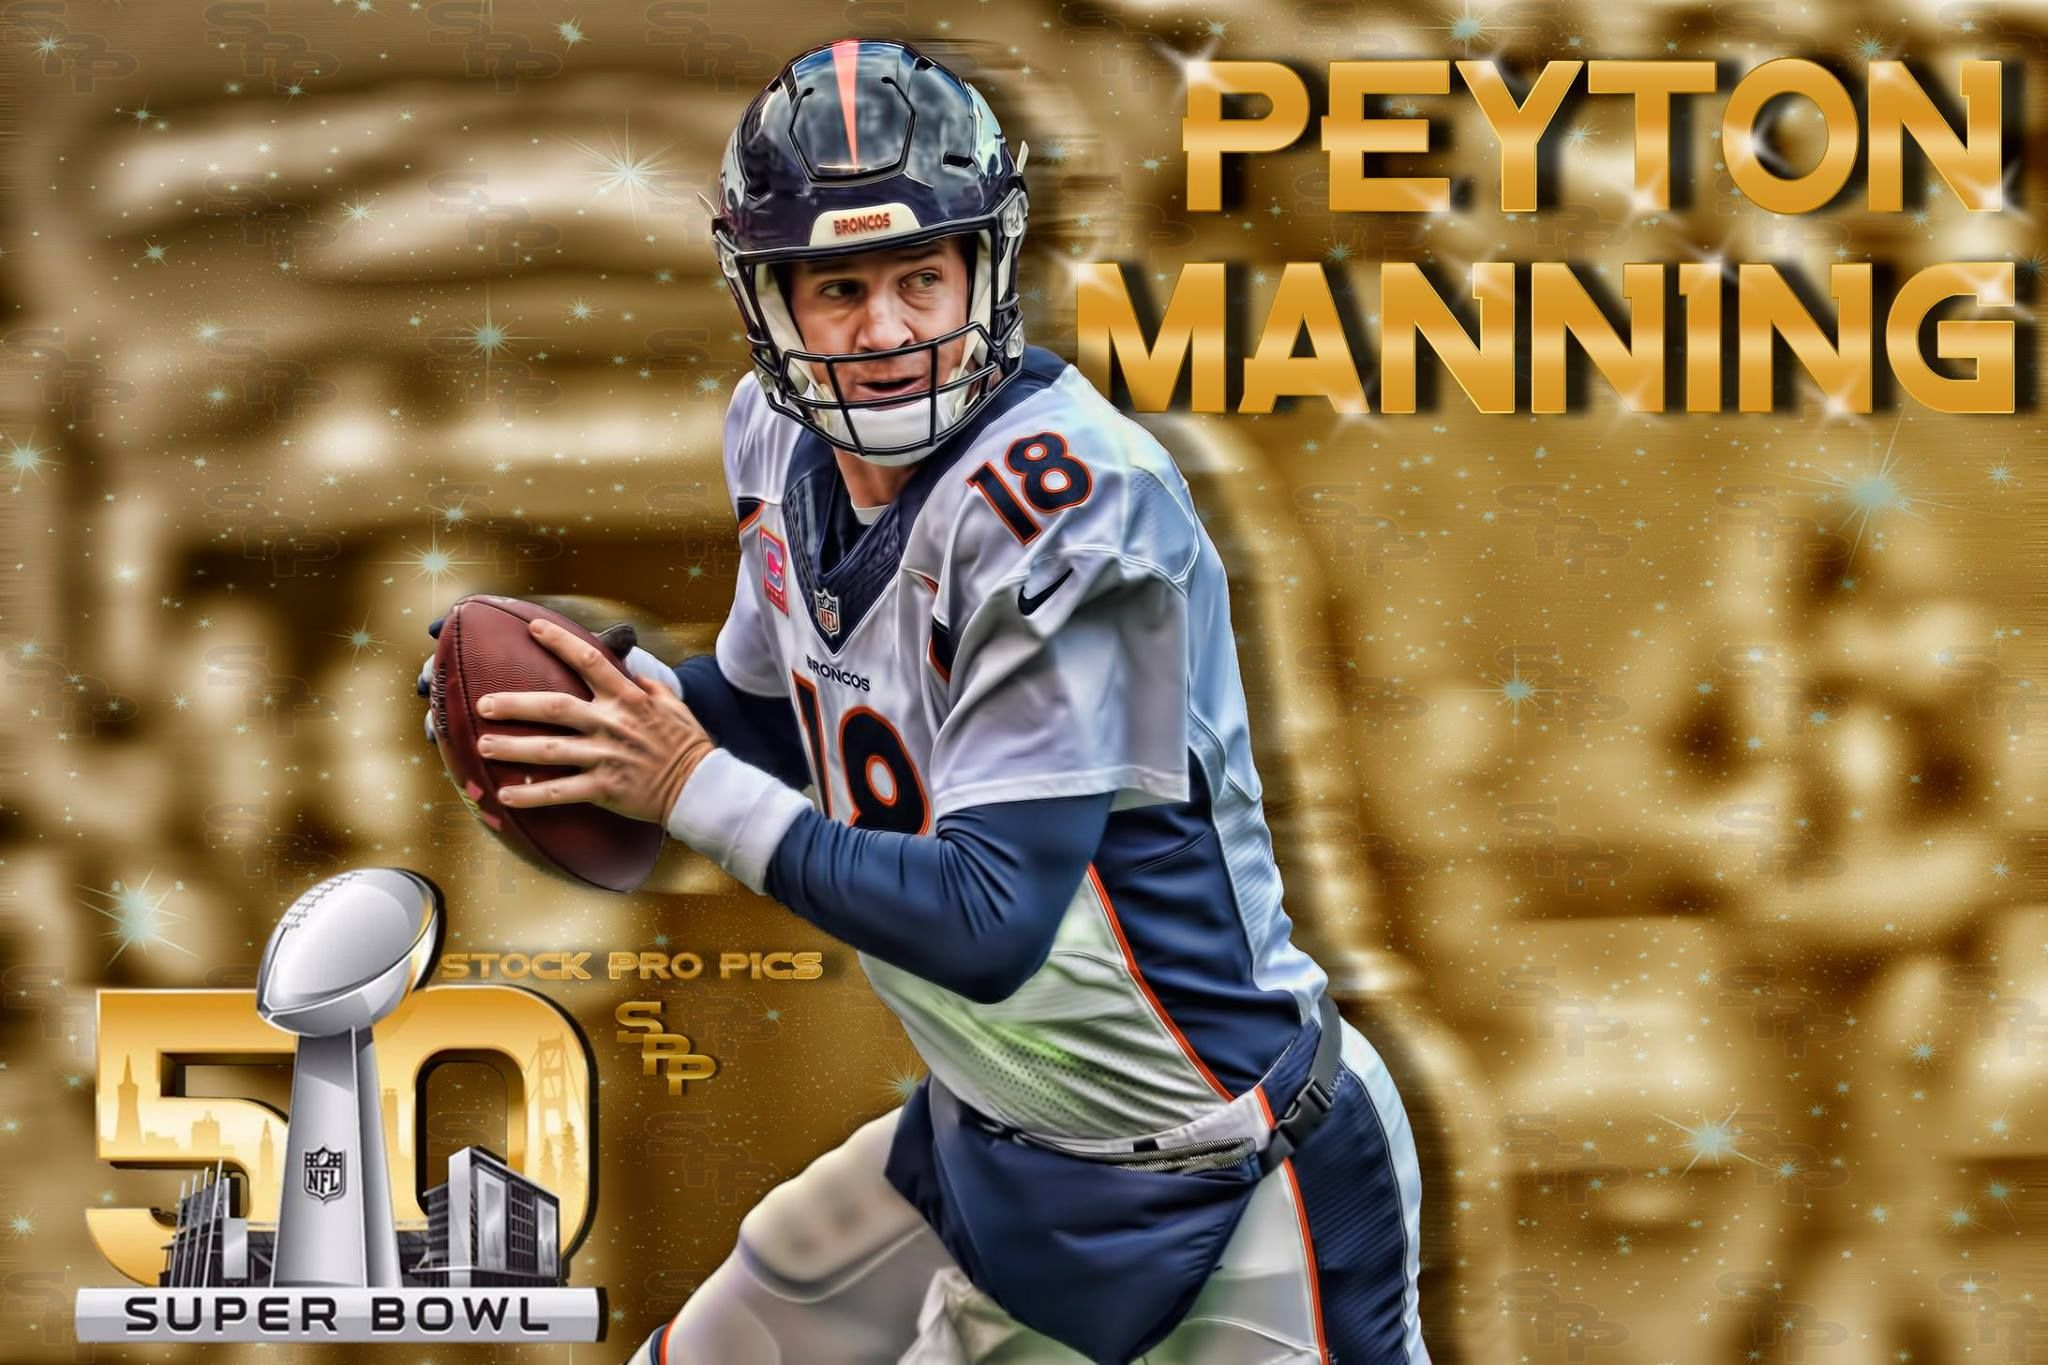 peyton manning superbowl 50 pictures photos and images